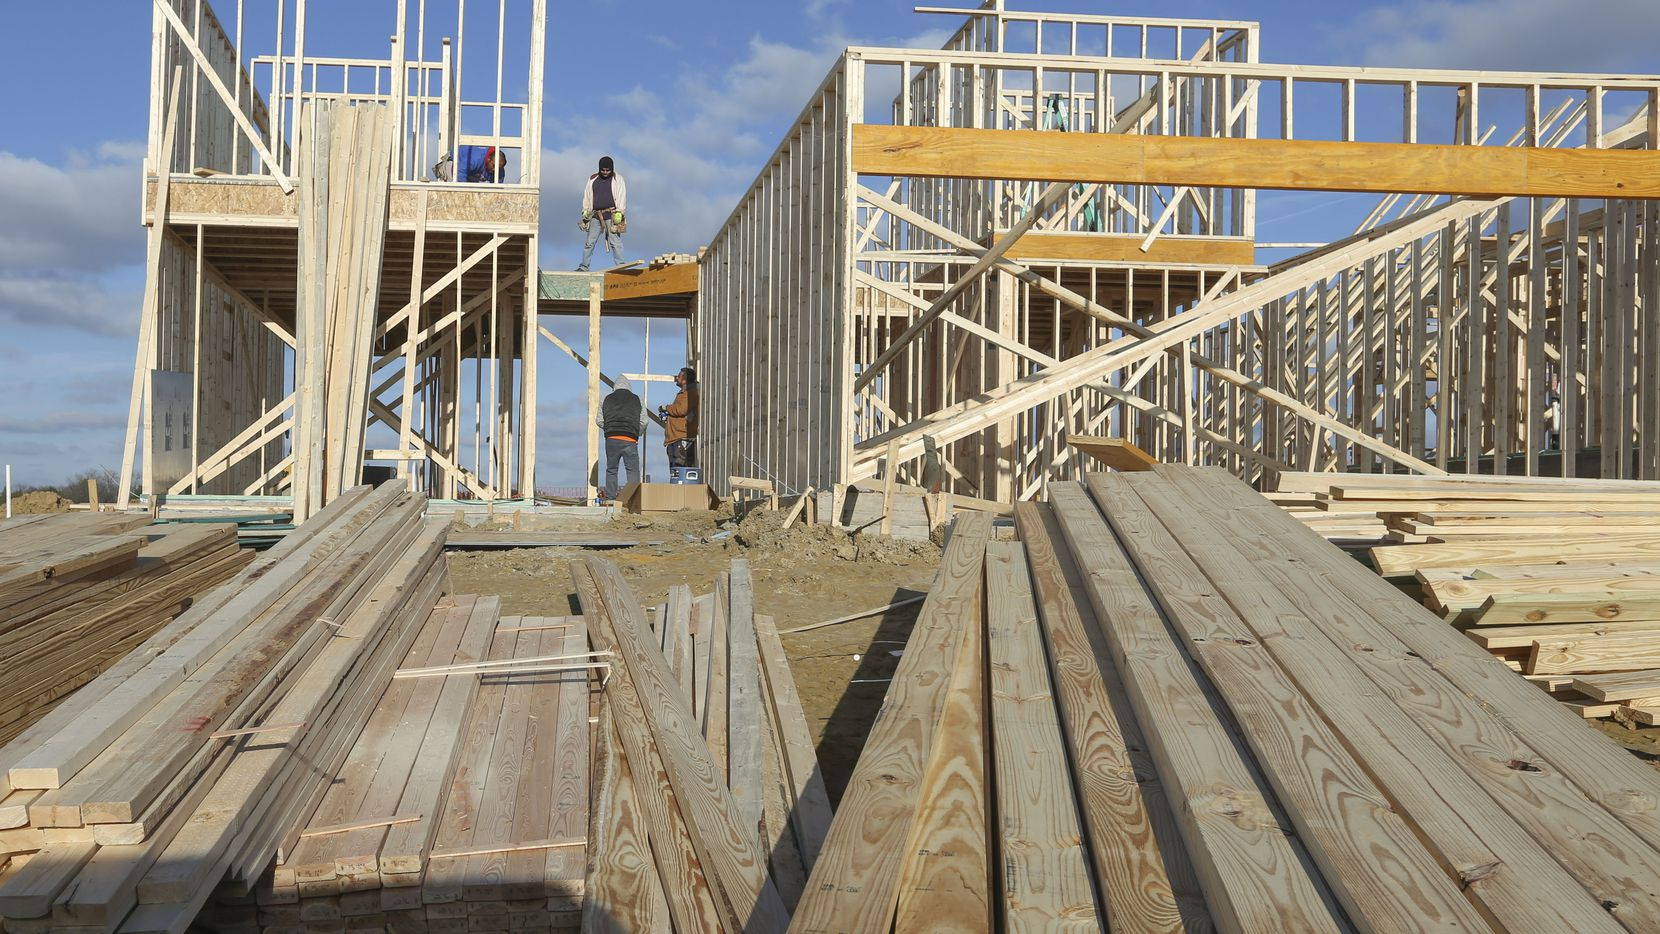 Tariffs on lumber imported from Canada have contributed to soaring U.S. homebuilding costs.